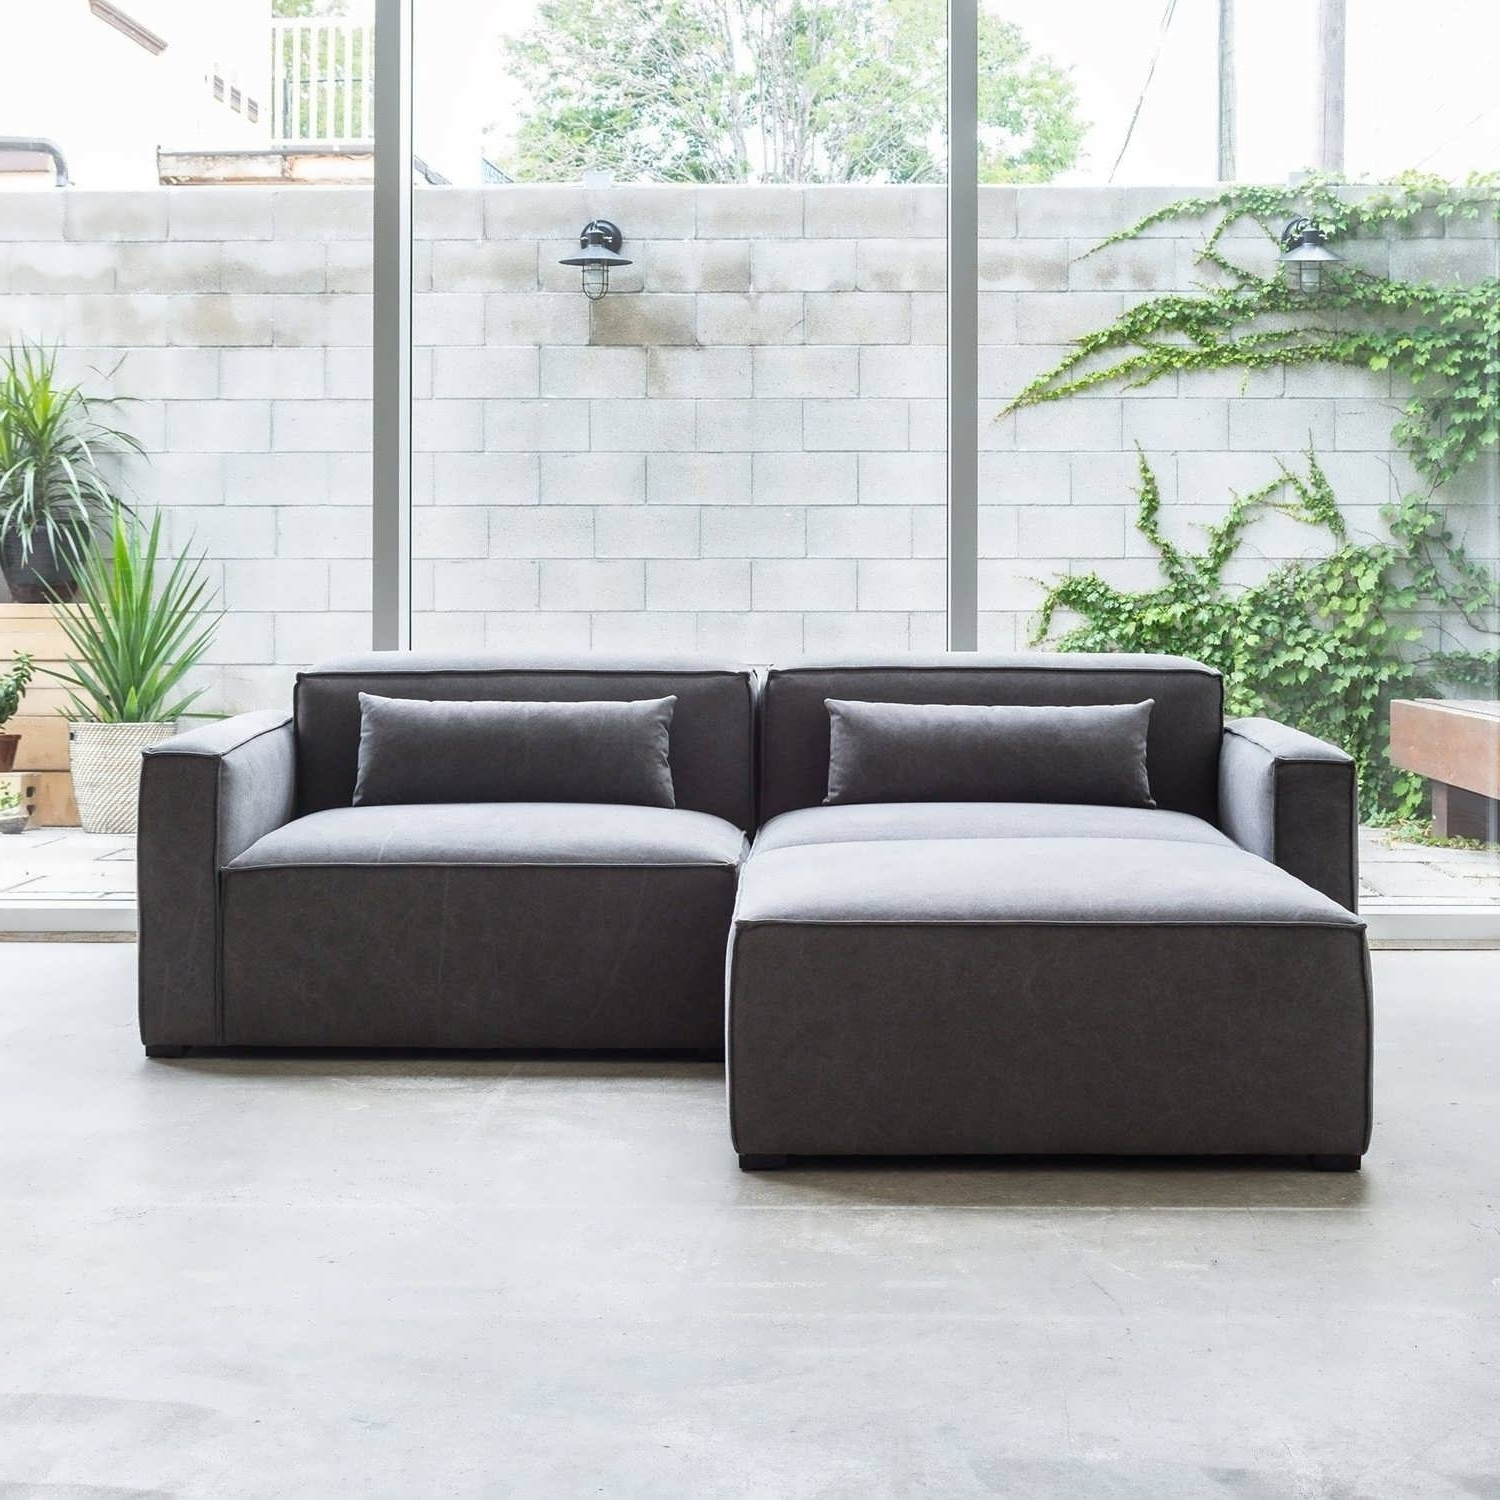 Double Chaise Sectionals Inside Popular Sofa : Modern Sectional Sofas  Double Chaise Sectional Living Room (